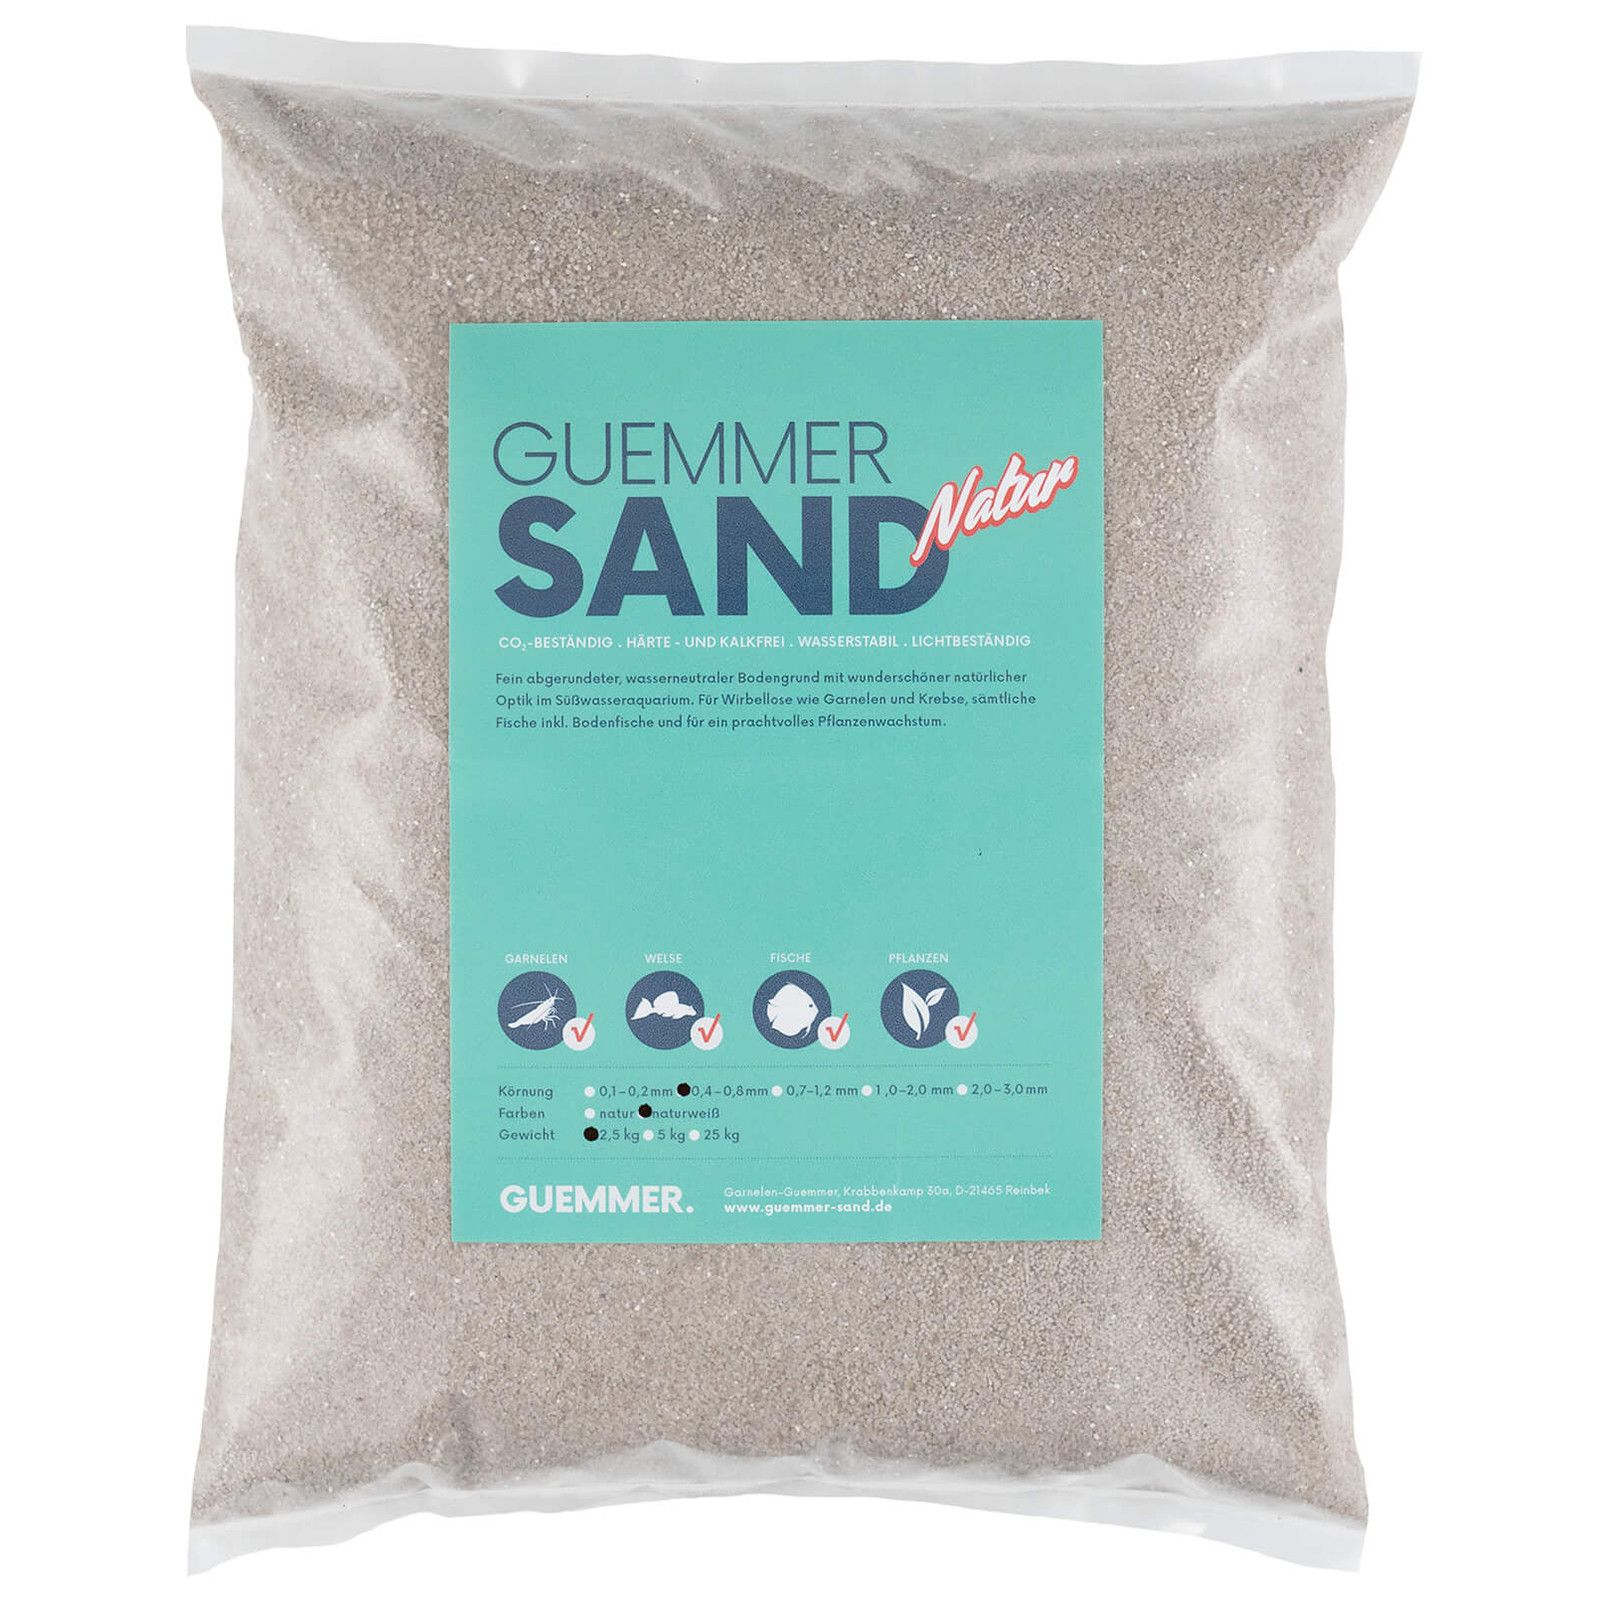 Guemmer Sand - nature white - 0,4-0,8 mm